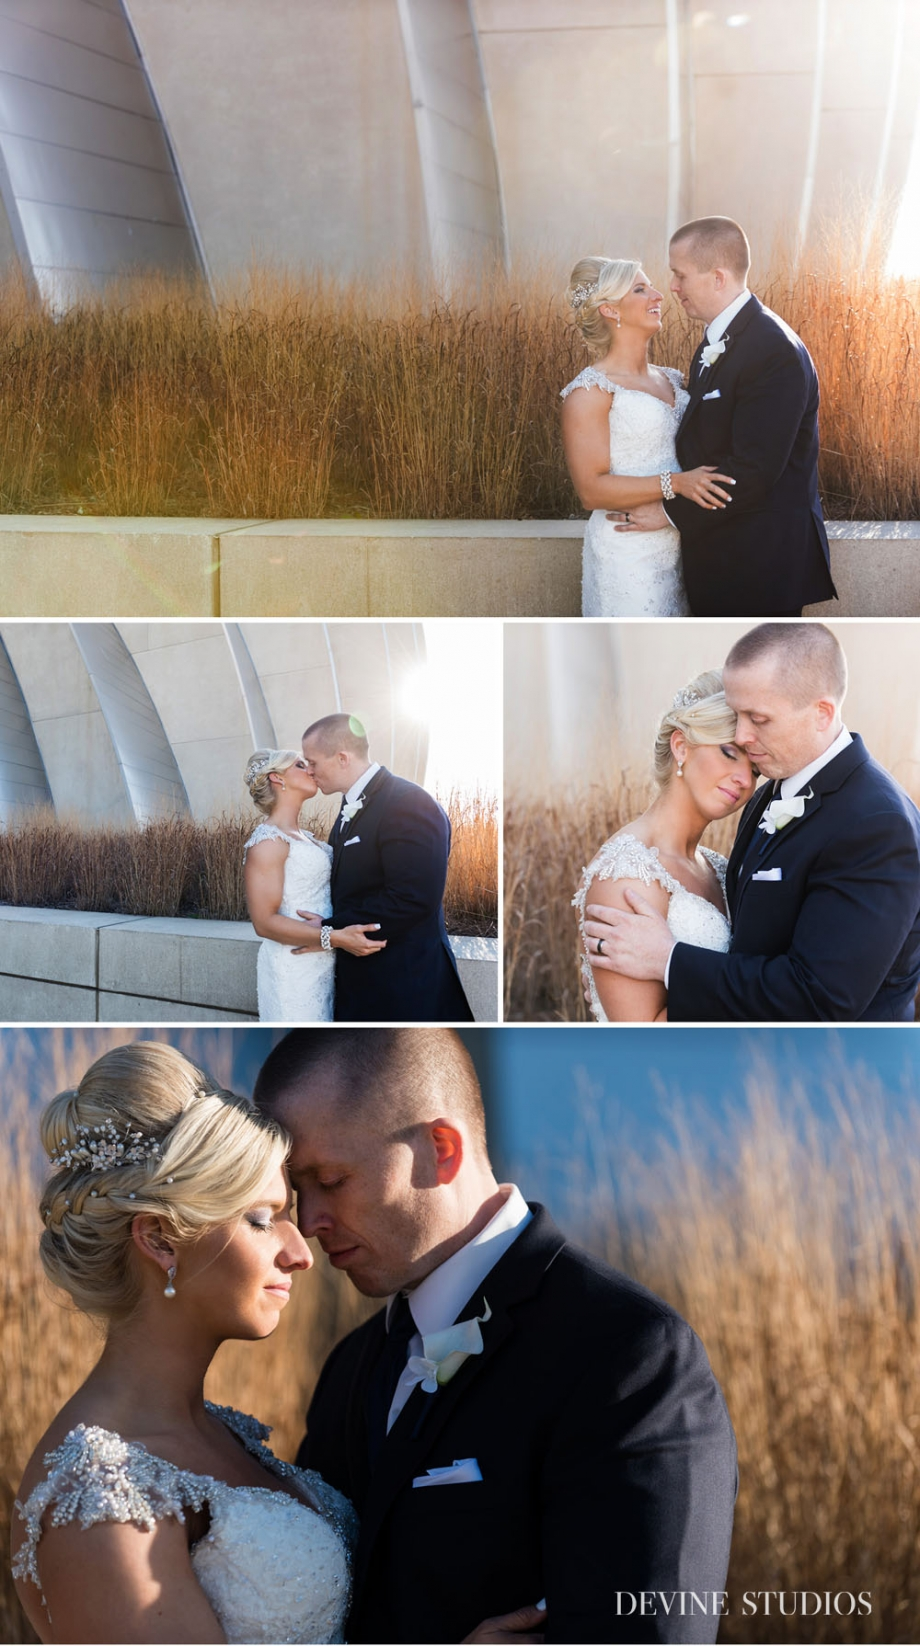 http://devinestudios.com/boudoir/wp-content/uploads/2016/05/10-839-post/Kansas-City-Wedding-Photography-Town-Pavilion-photojournalist-photographers13(pp_w920_h1646).jpg